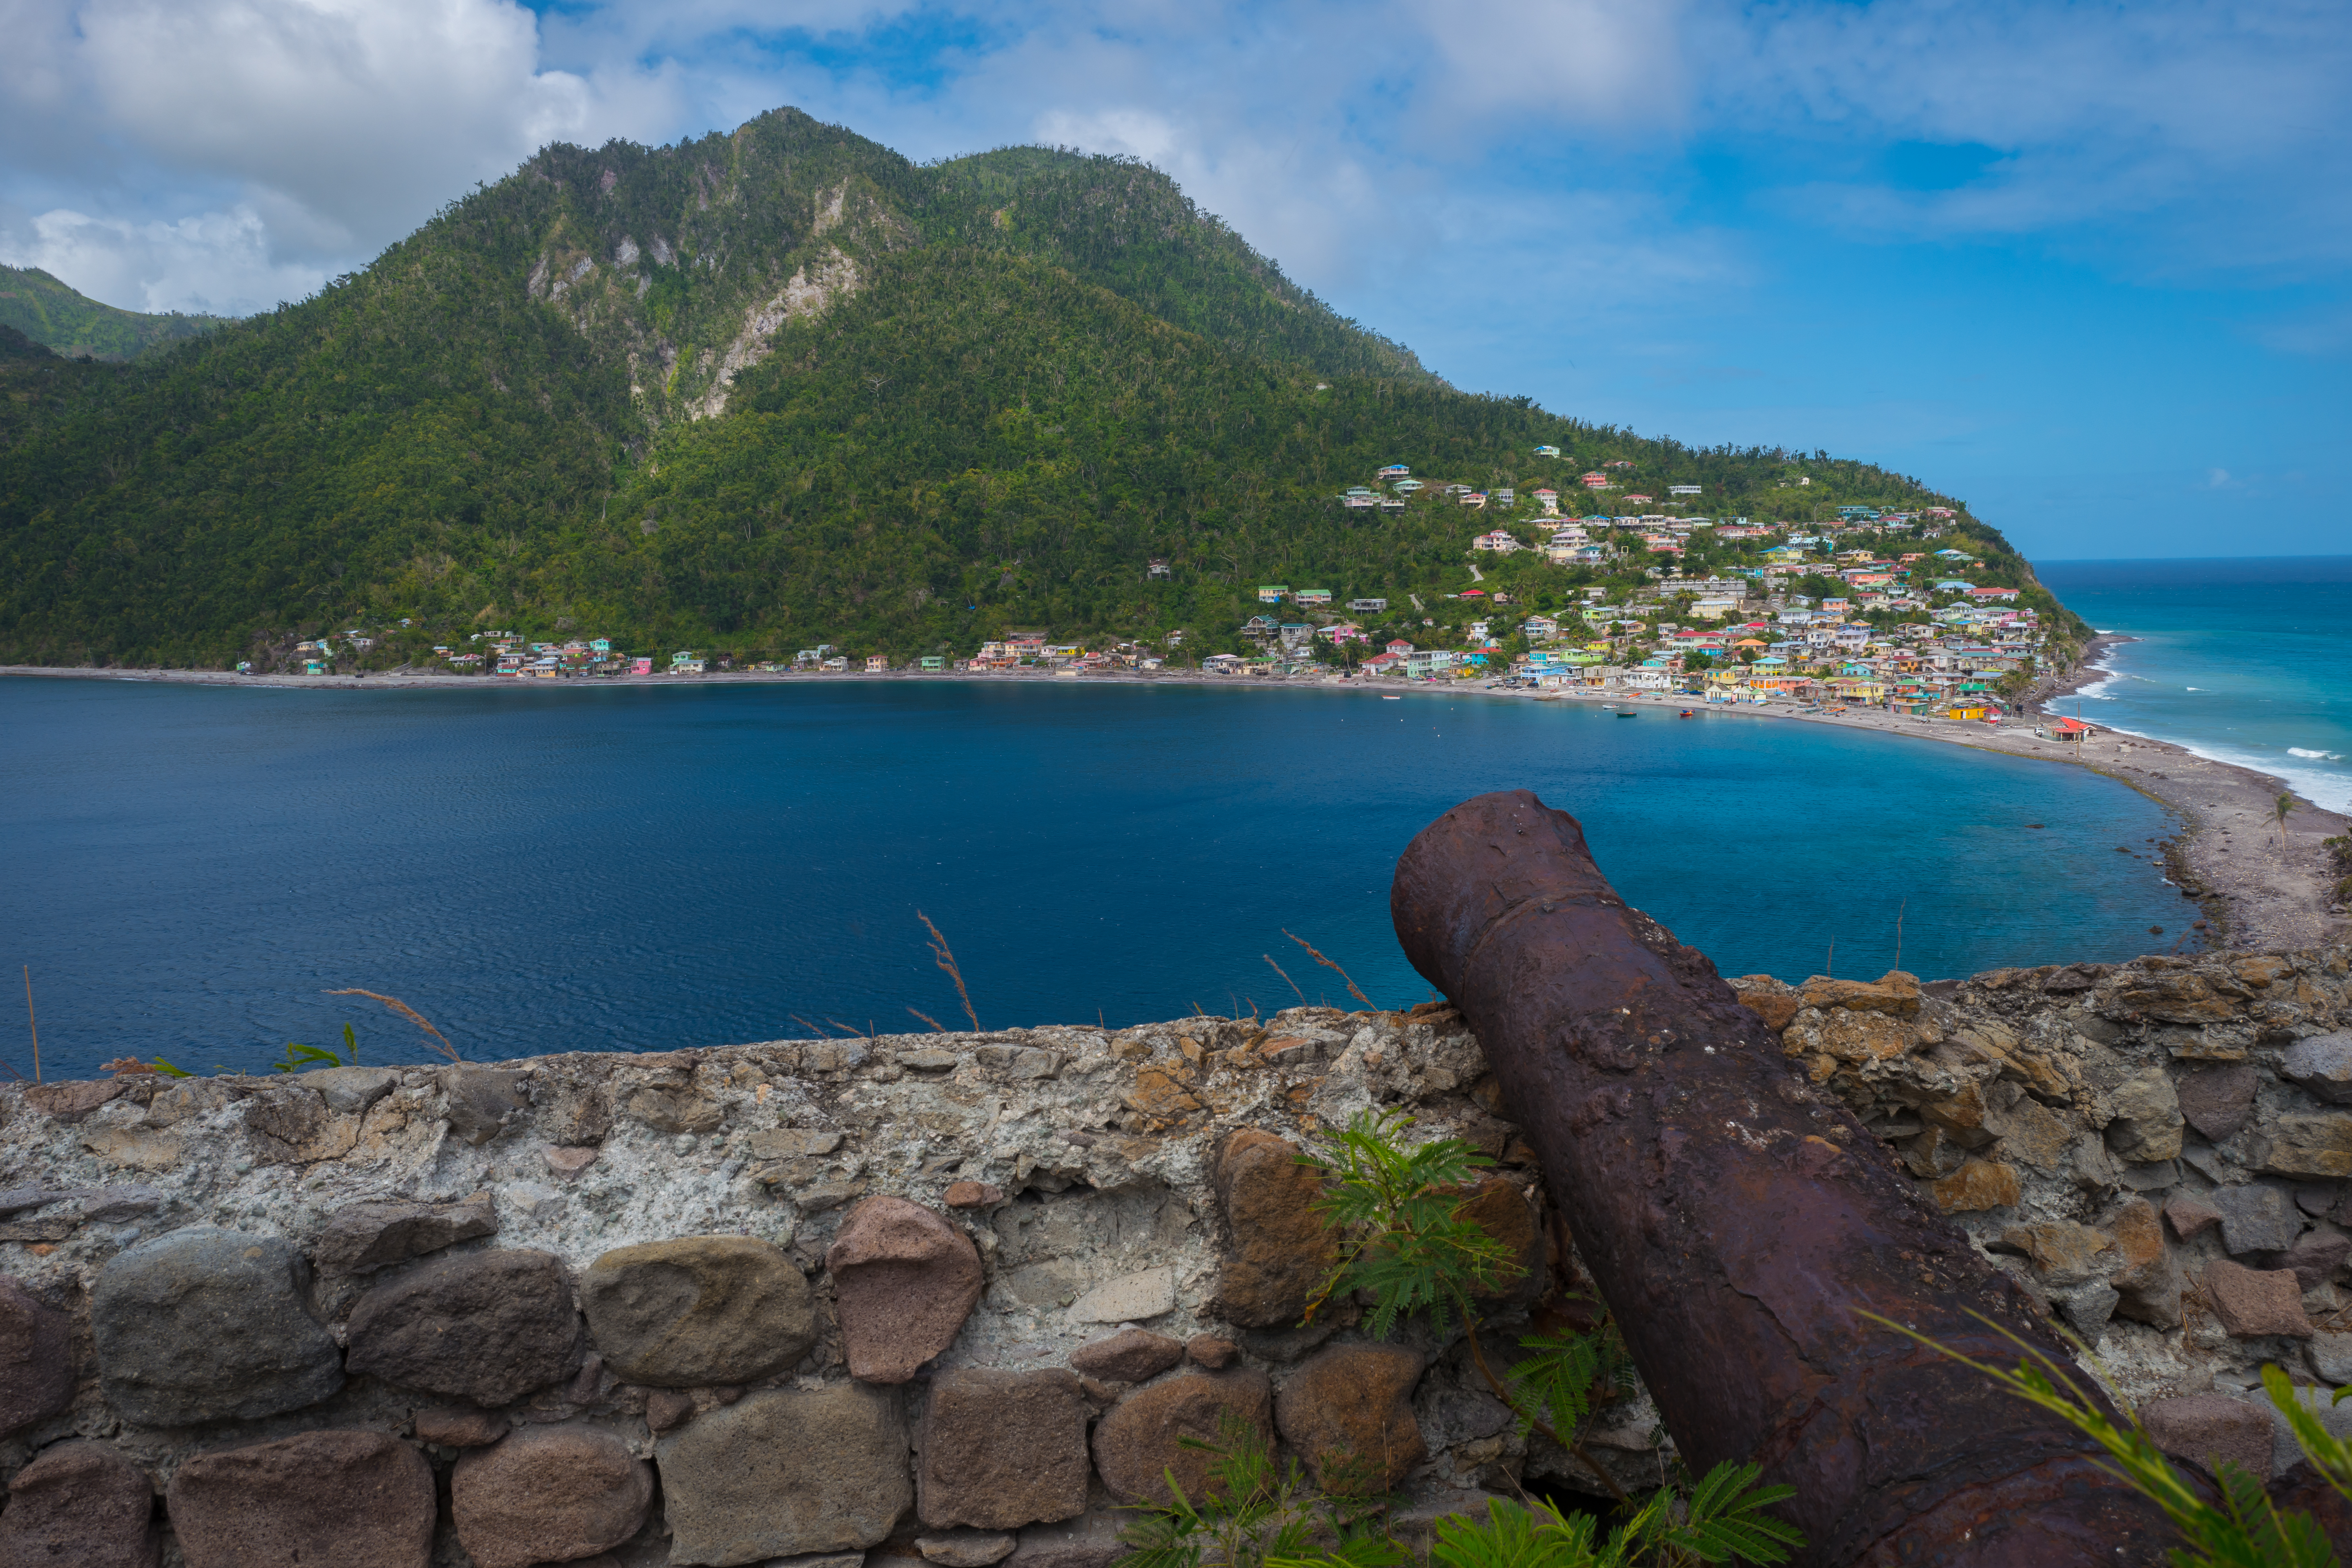 The small village of Scotts Head on the southern tip of Dominica where Maria first made landfall on September 18, 2017.